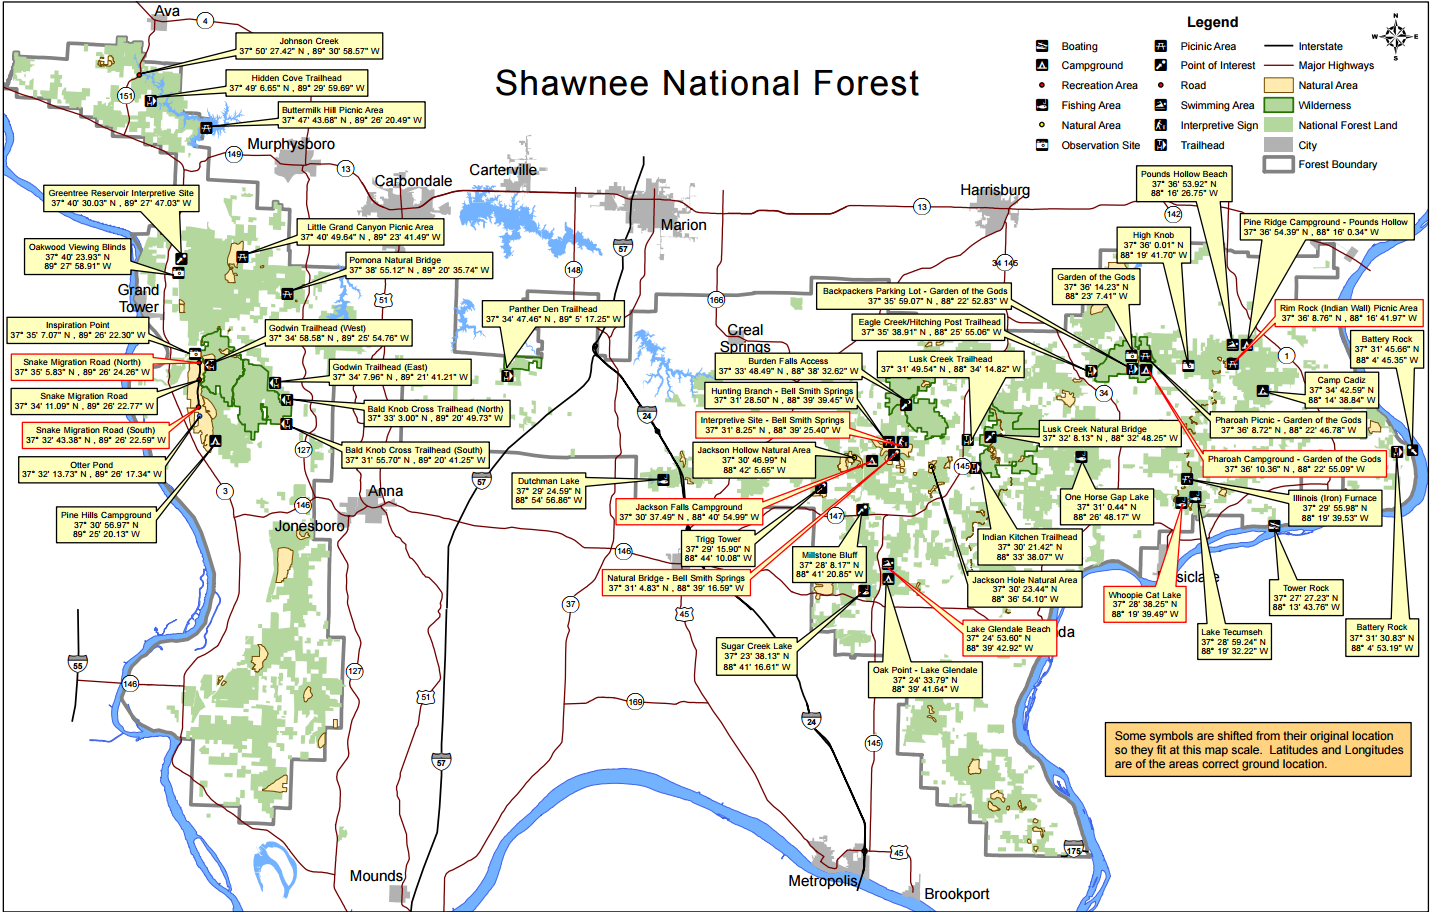 Shawnee National Forest, Map in 2019 | Shawnee national ... on texas map, florida map, indiana map, wisconsin map, michigan map, maine map, illinois capital, kentucky map, chicago map, il map, united states map, illinois flag, ohio map, illinois abbreviation, illinois clipart, north carolina map, illinois license plates, missouri map, arkansas map, iowa map,